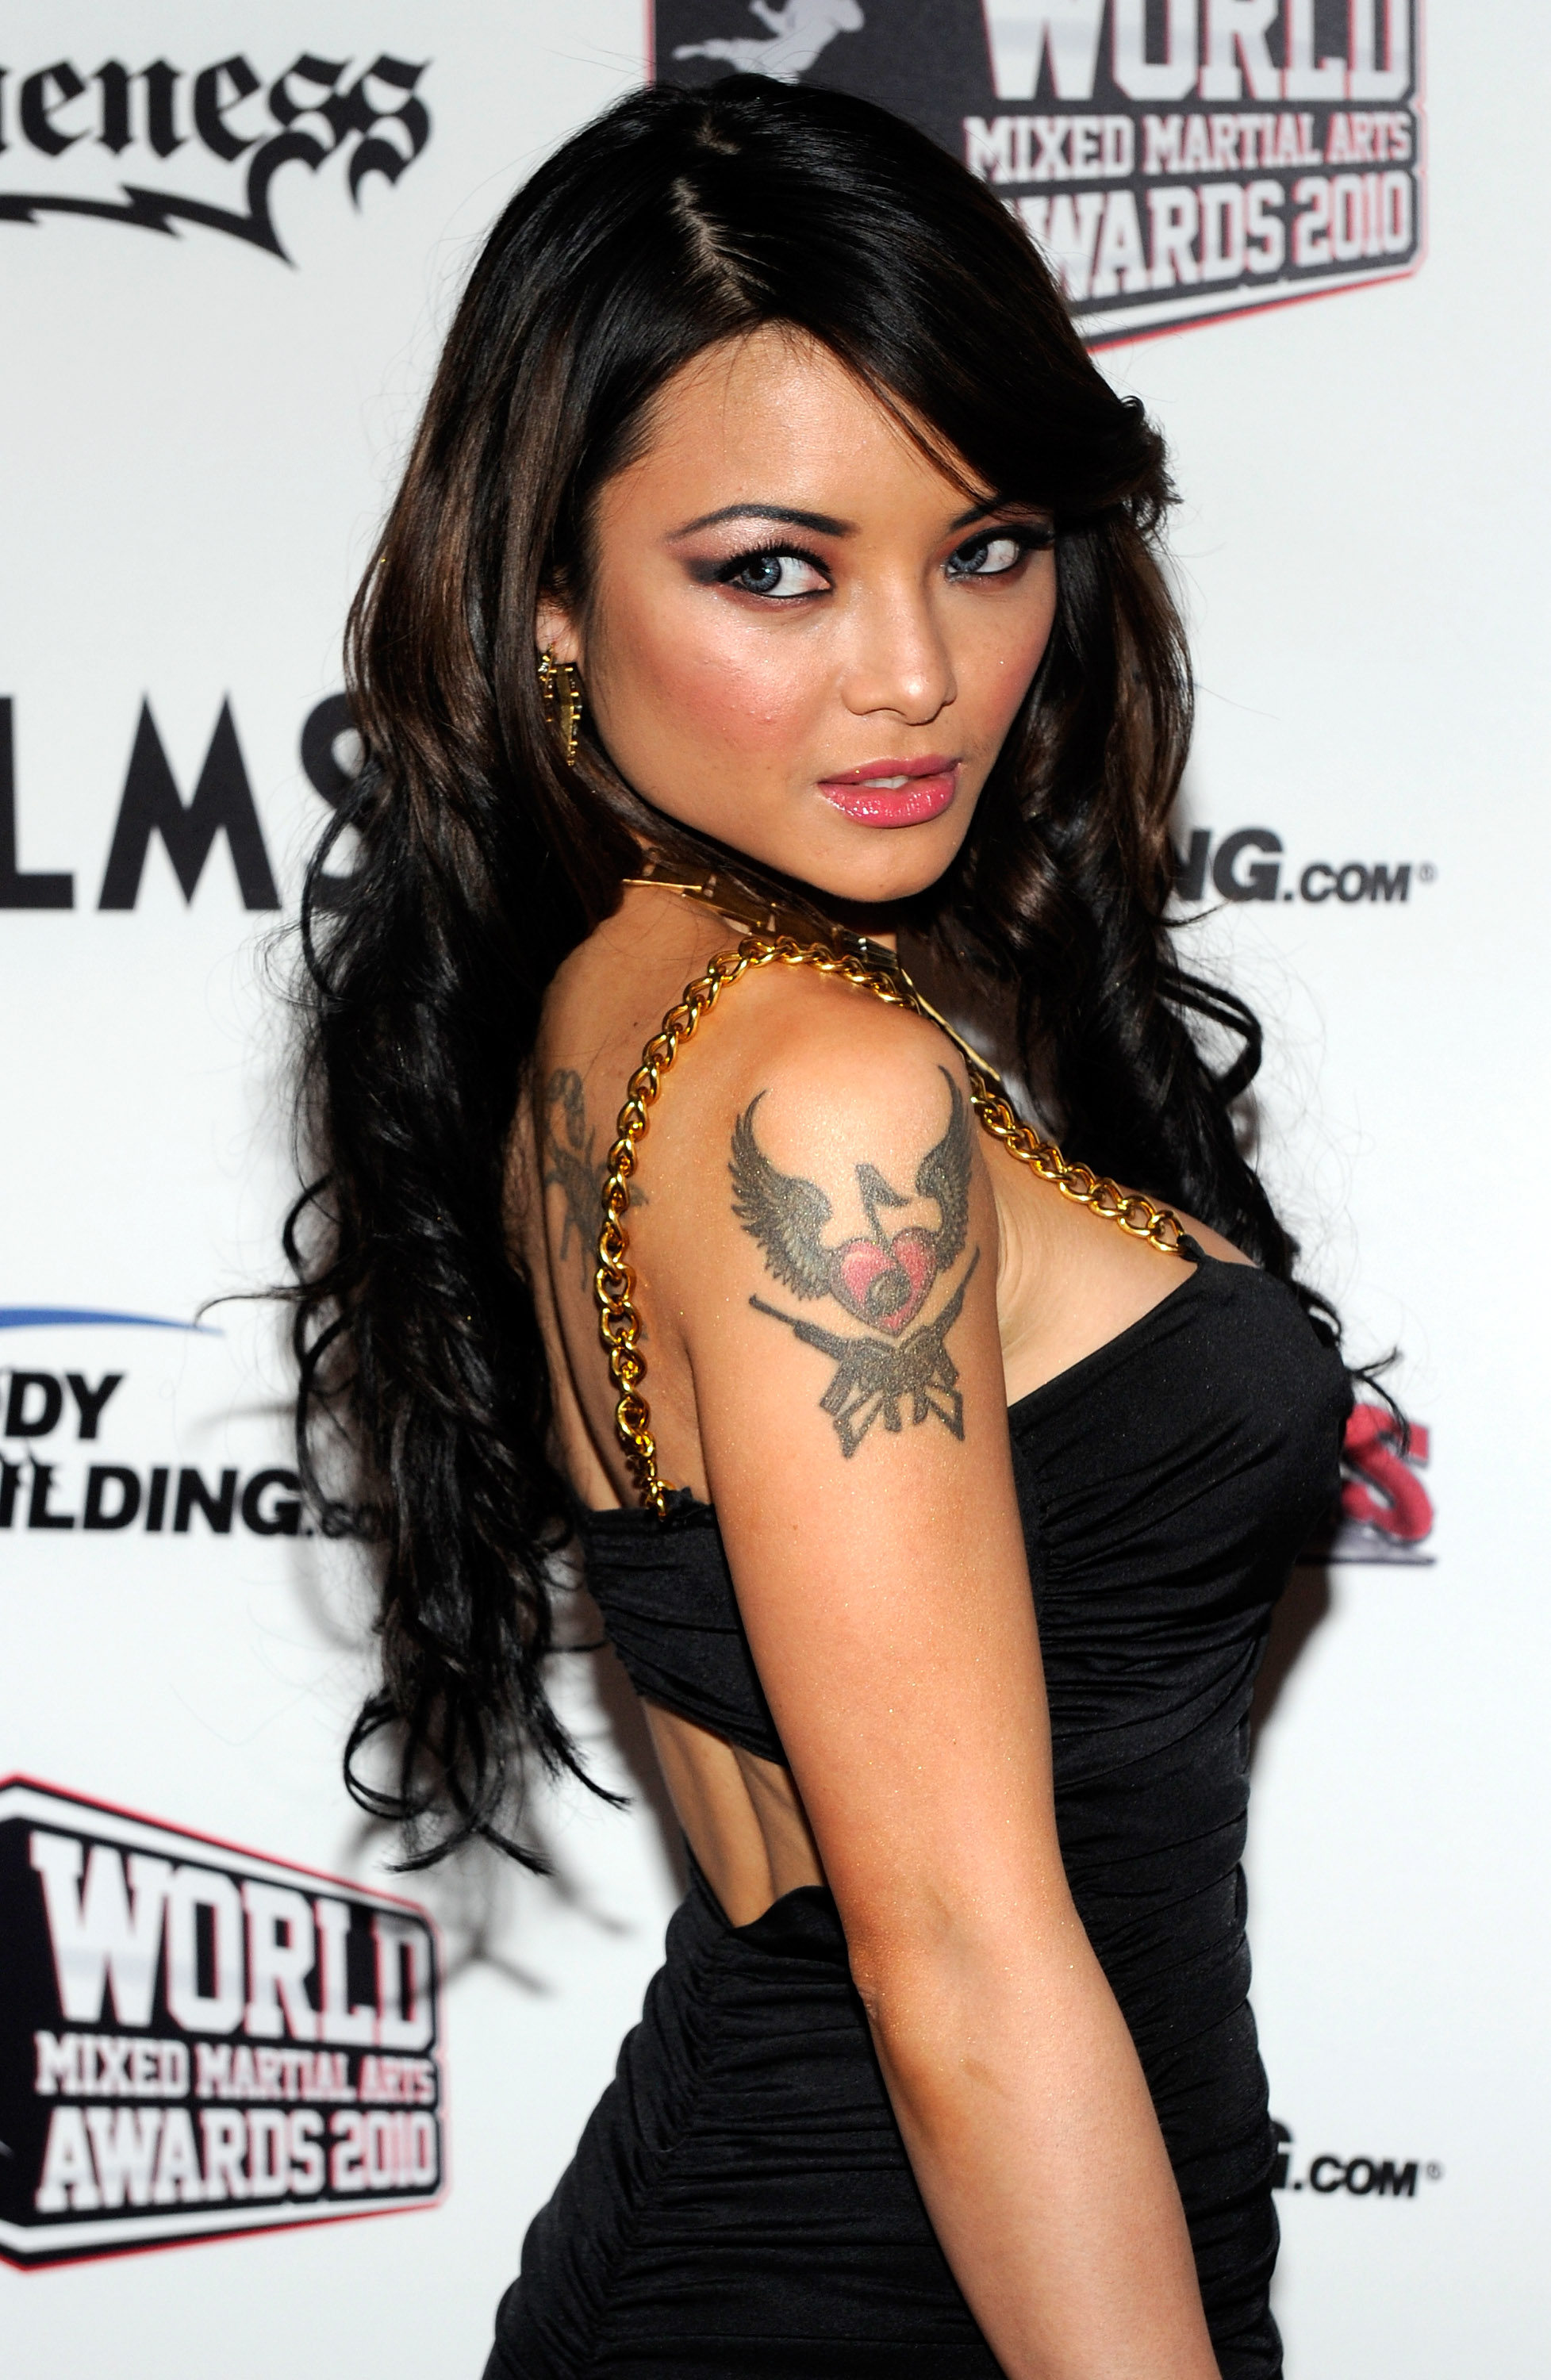 Tila Tequila giving a bold and hot look in a black dress